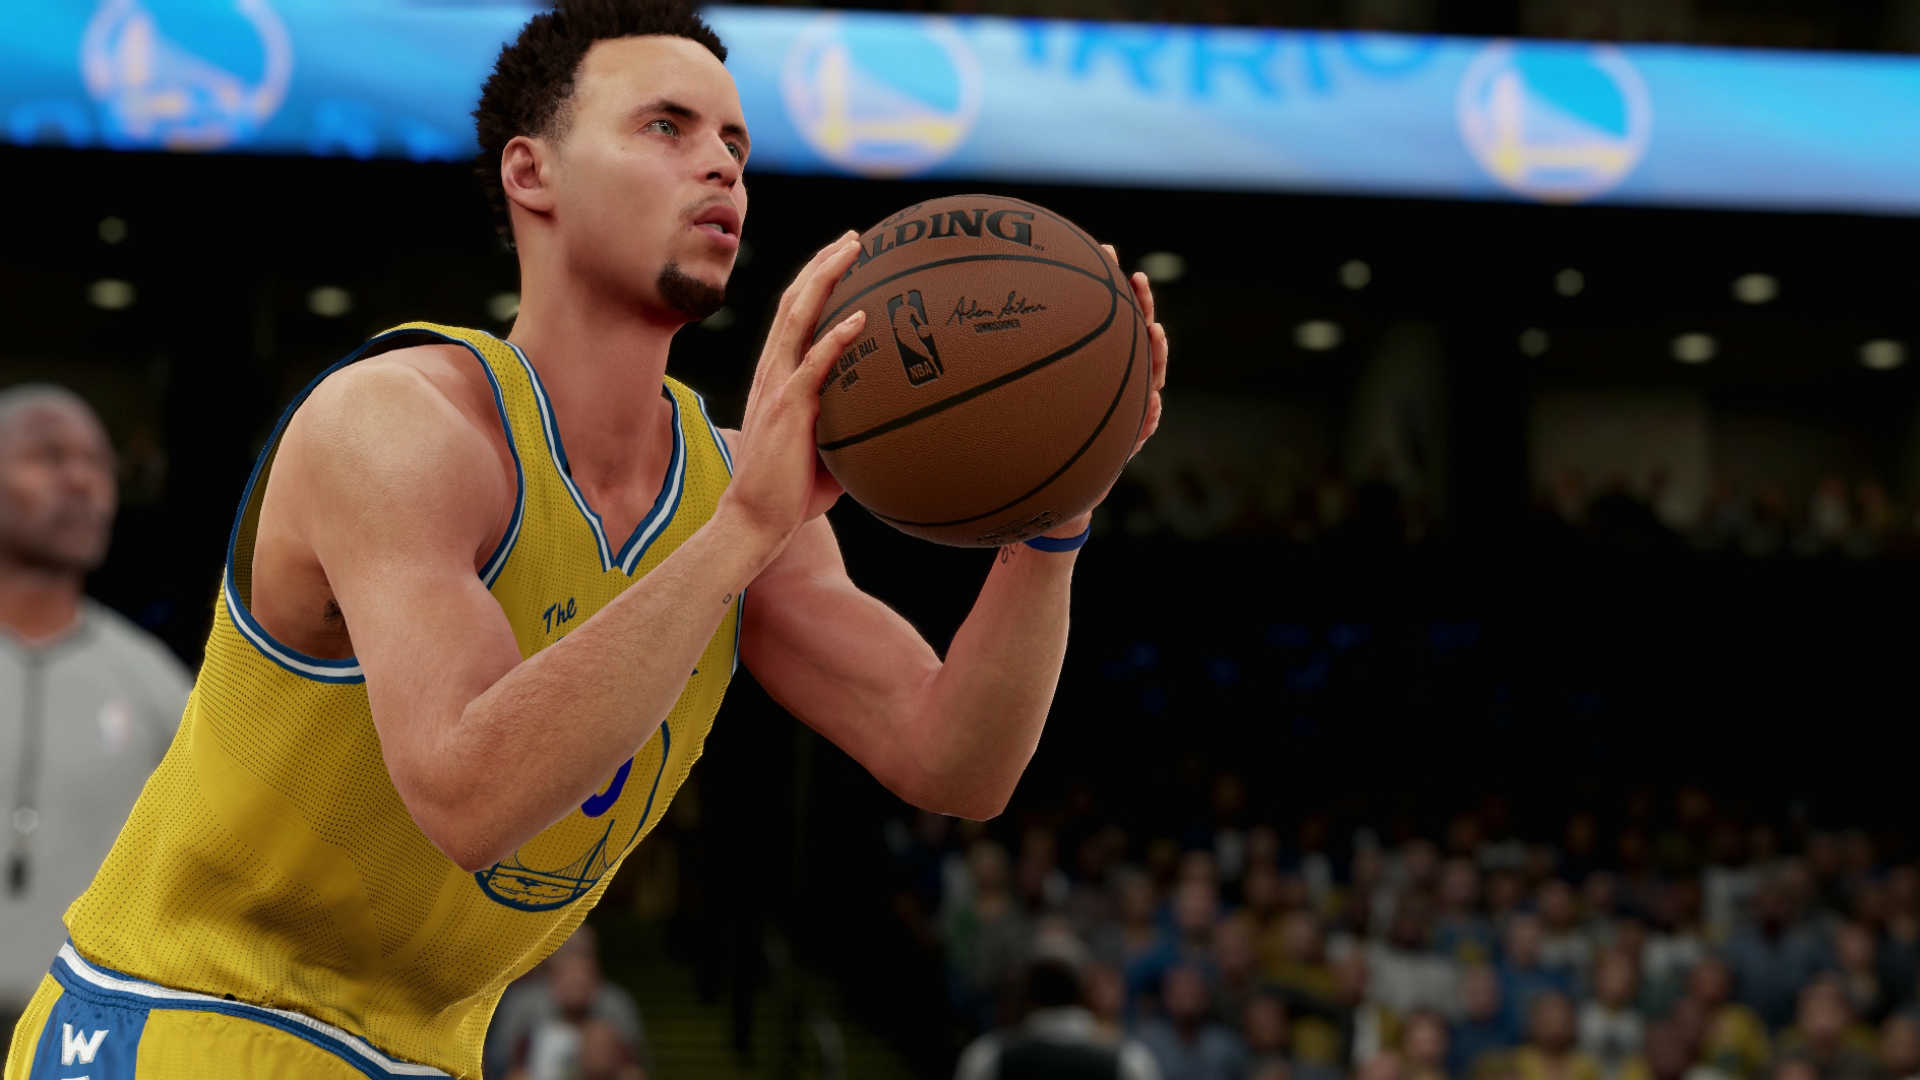 How Steph Curry's 3-point shooting is killing video games, too